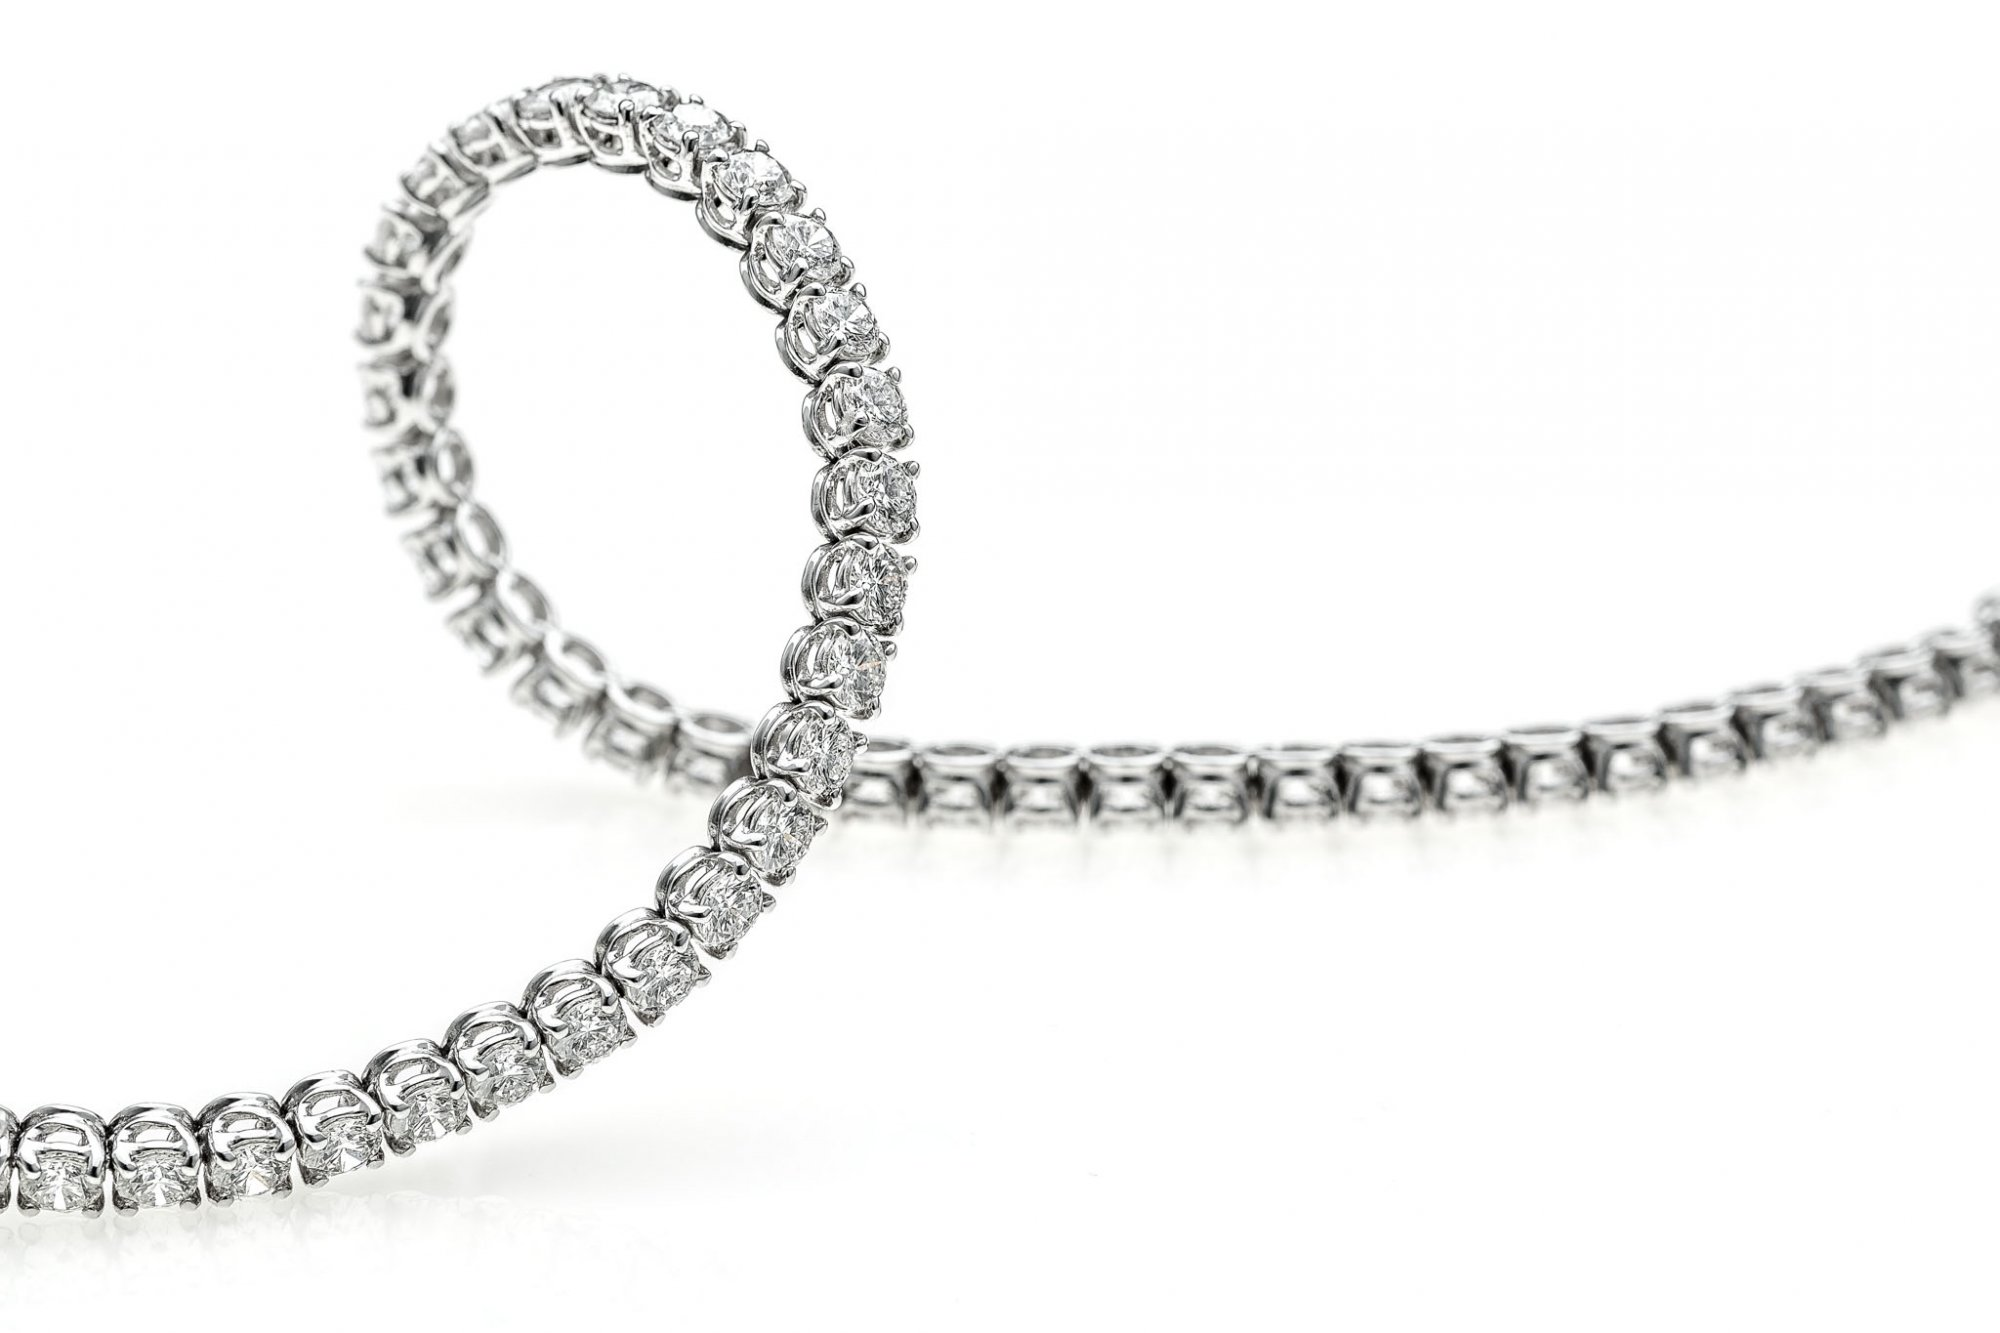 Tennis bracelet in 18 KT white gold white round brilliant cut diamonds ct.4.00 VVS/VS G/F color